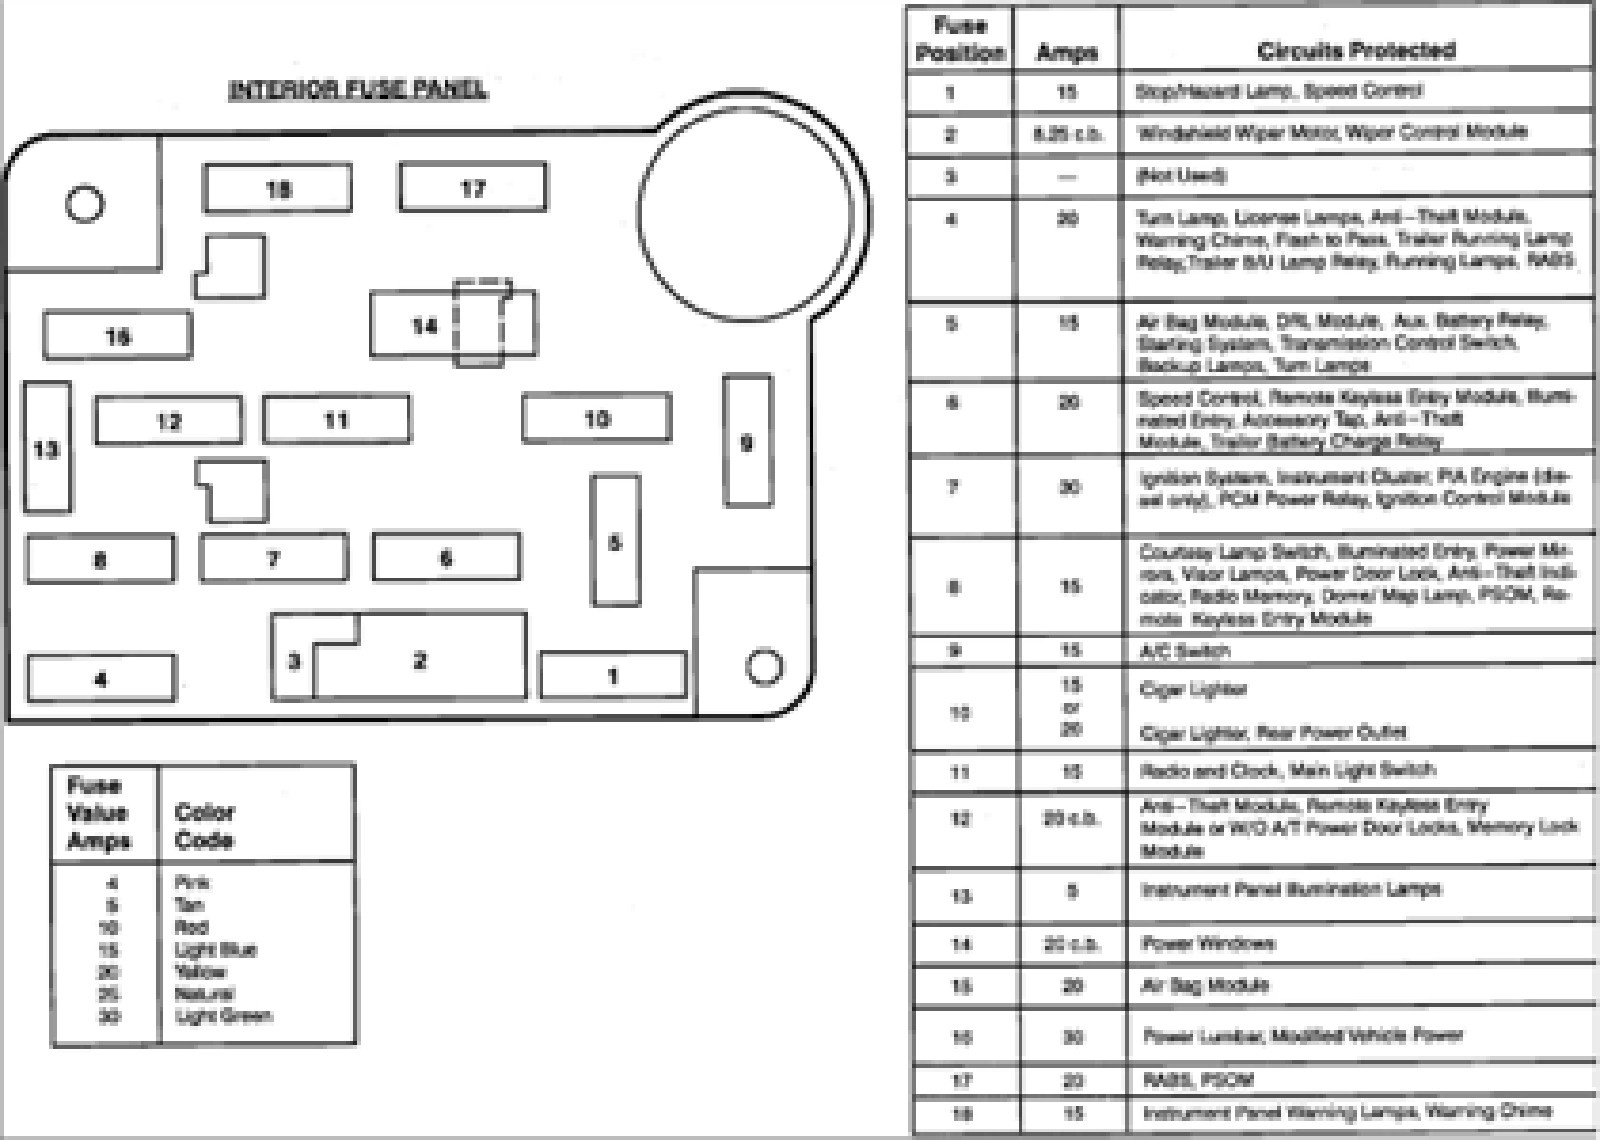 pic 8862473225641007897 1600x1200 1997 e150 fuse box diagram 1997 wiring diagrams instruction 1997 ford f150 fuse box diagram at gsmx.co